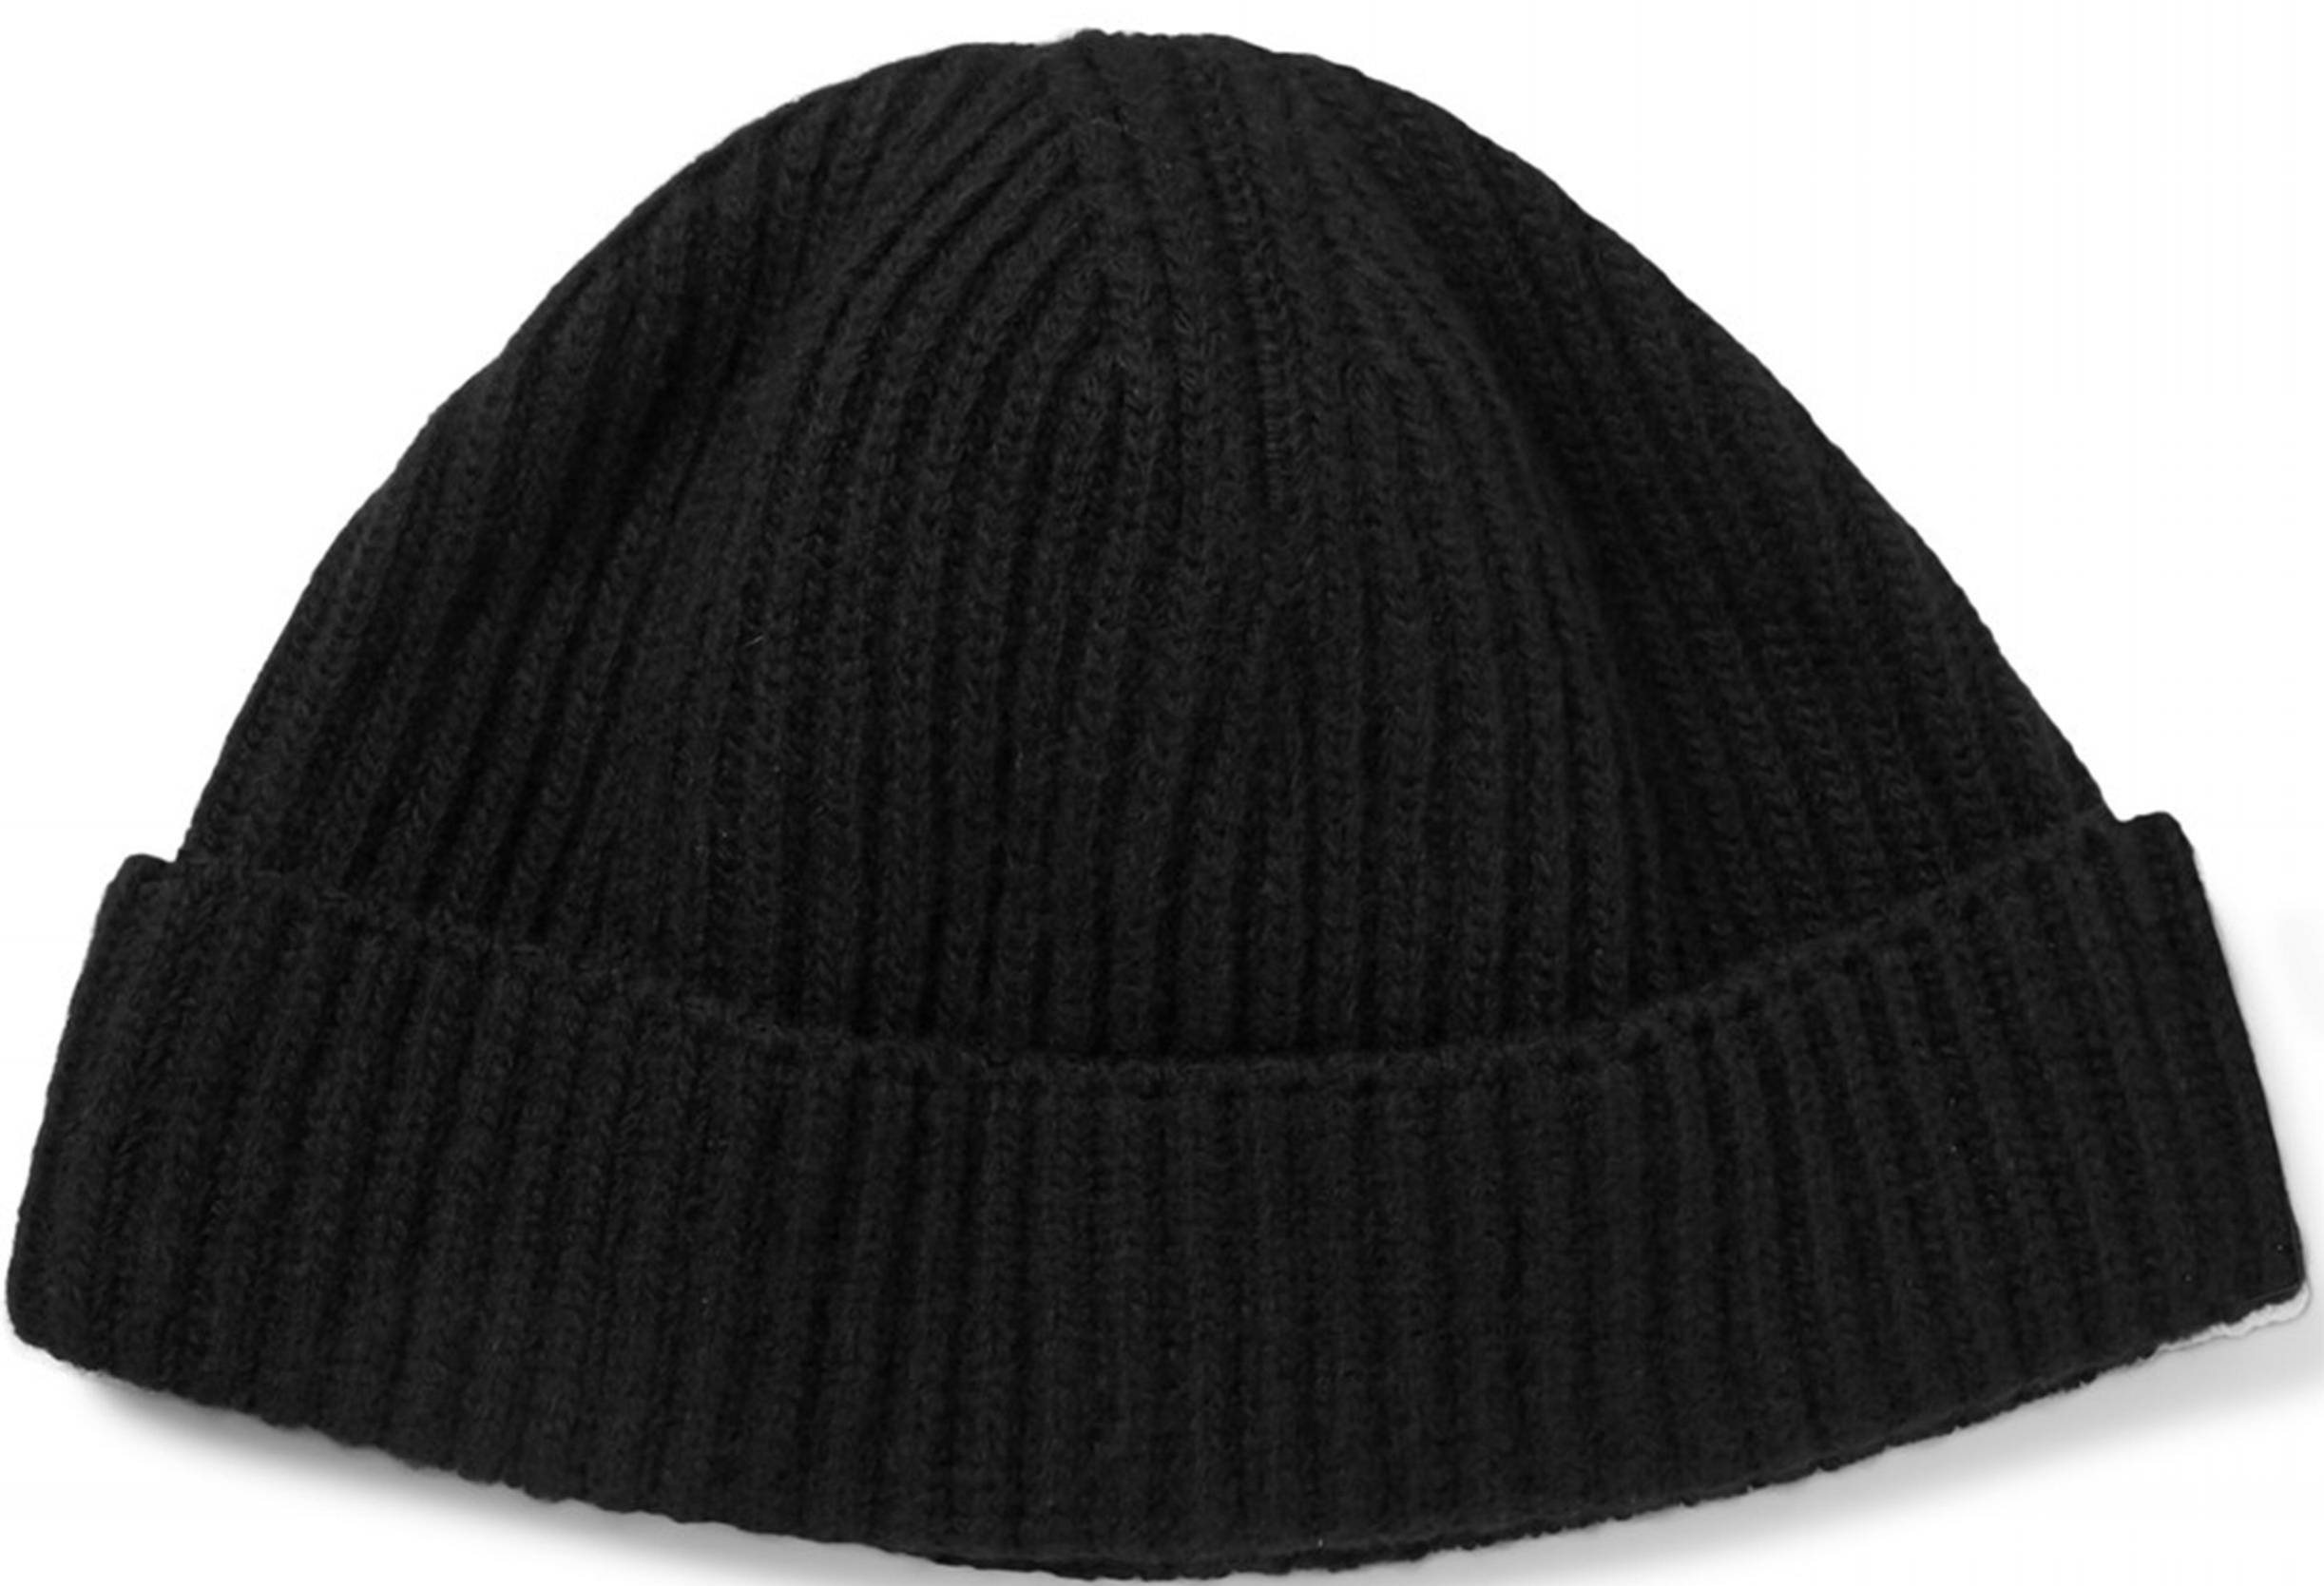 Lanvin Ribbed Wool Beanie at Mr. Porter, $245